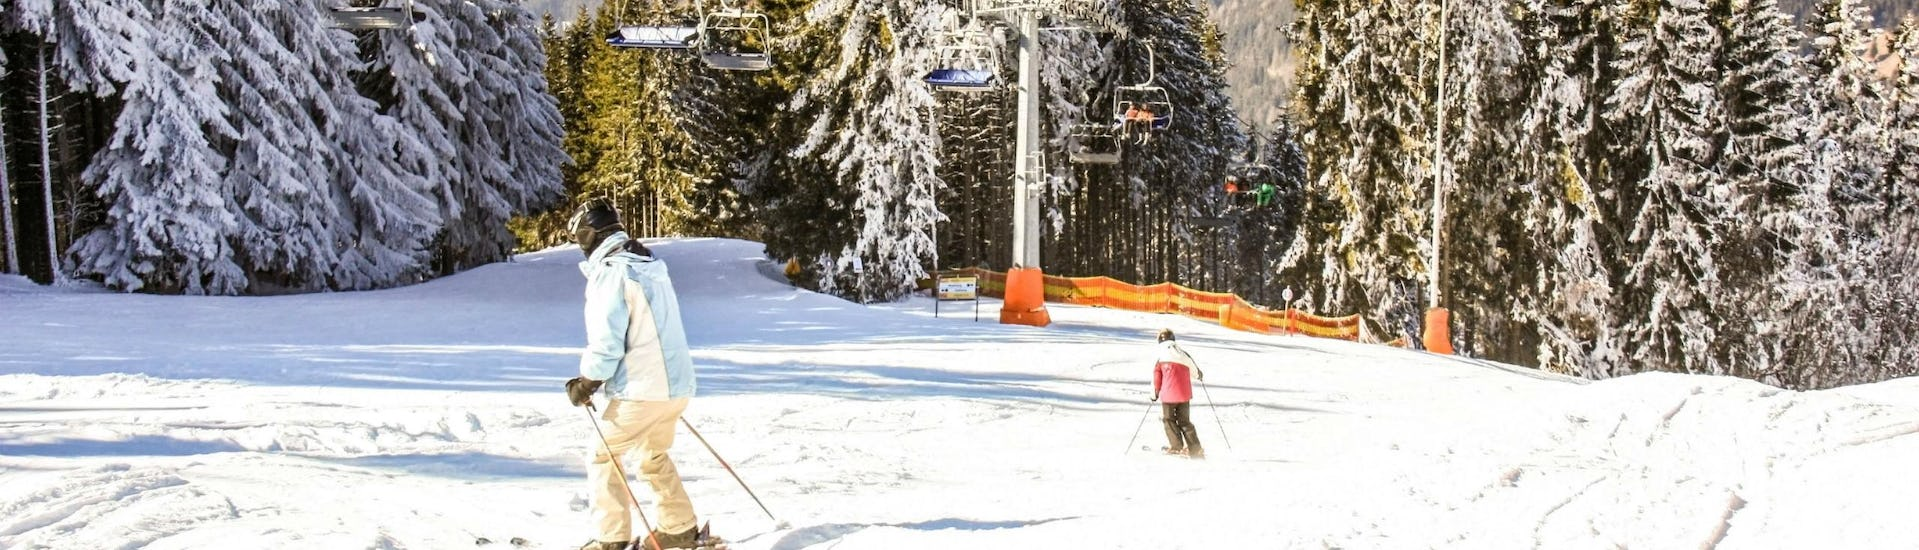 Two skiers are skiing down one of the ski slopes in the ski resort of Zauberberg-Hirschenkogel, where visitors can book ski lessons with the local ski schools.